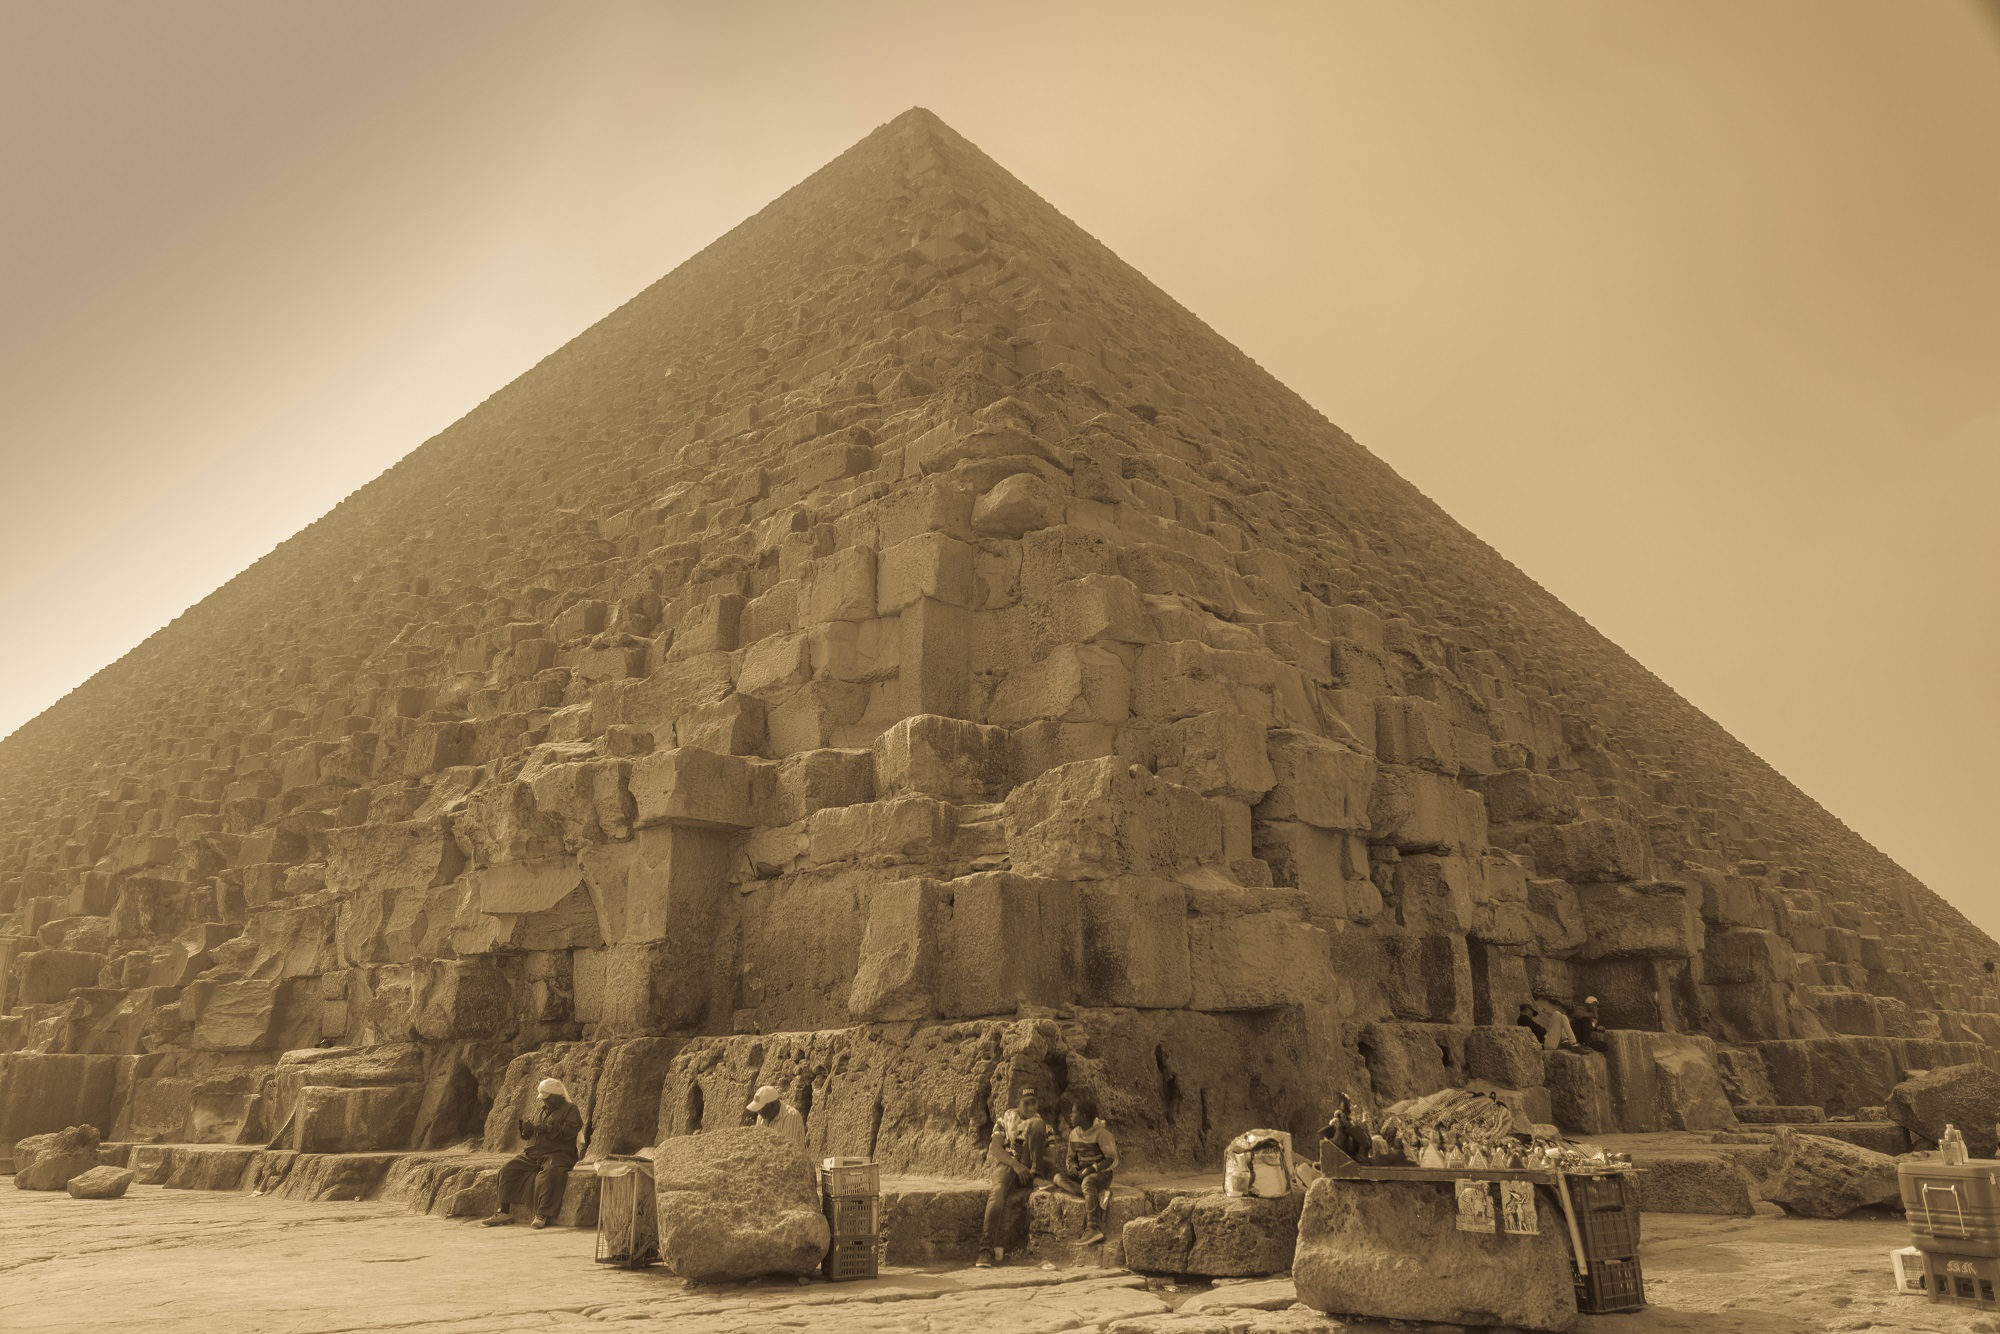 An image of the Great Pyramid of Giza. Shutterstock.